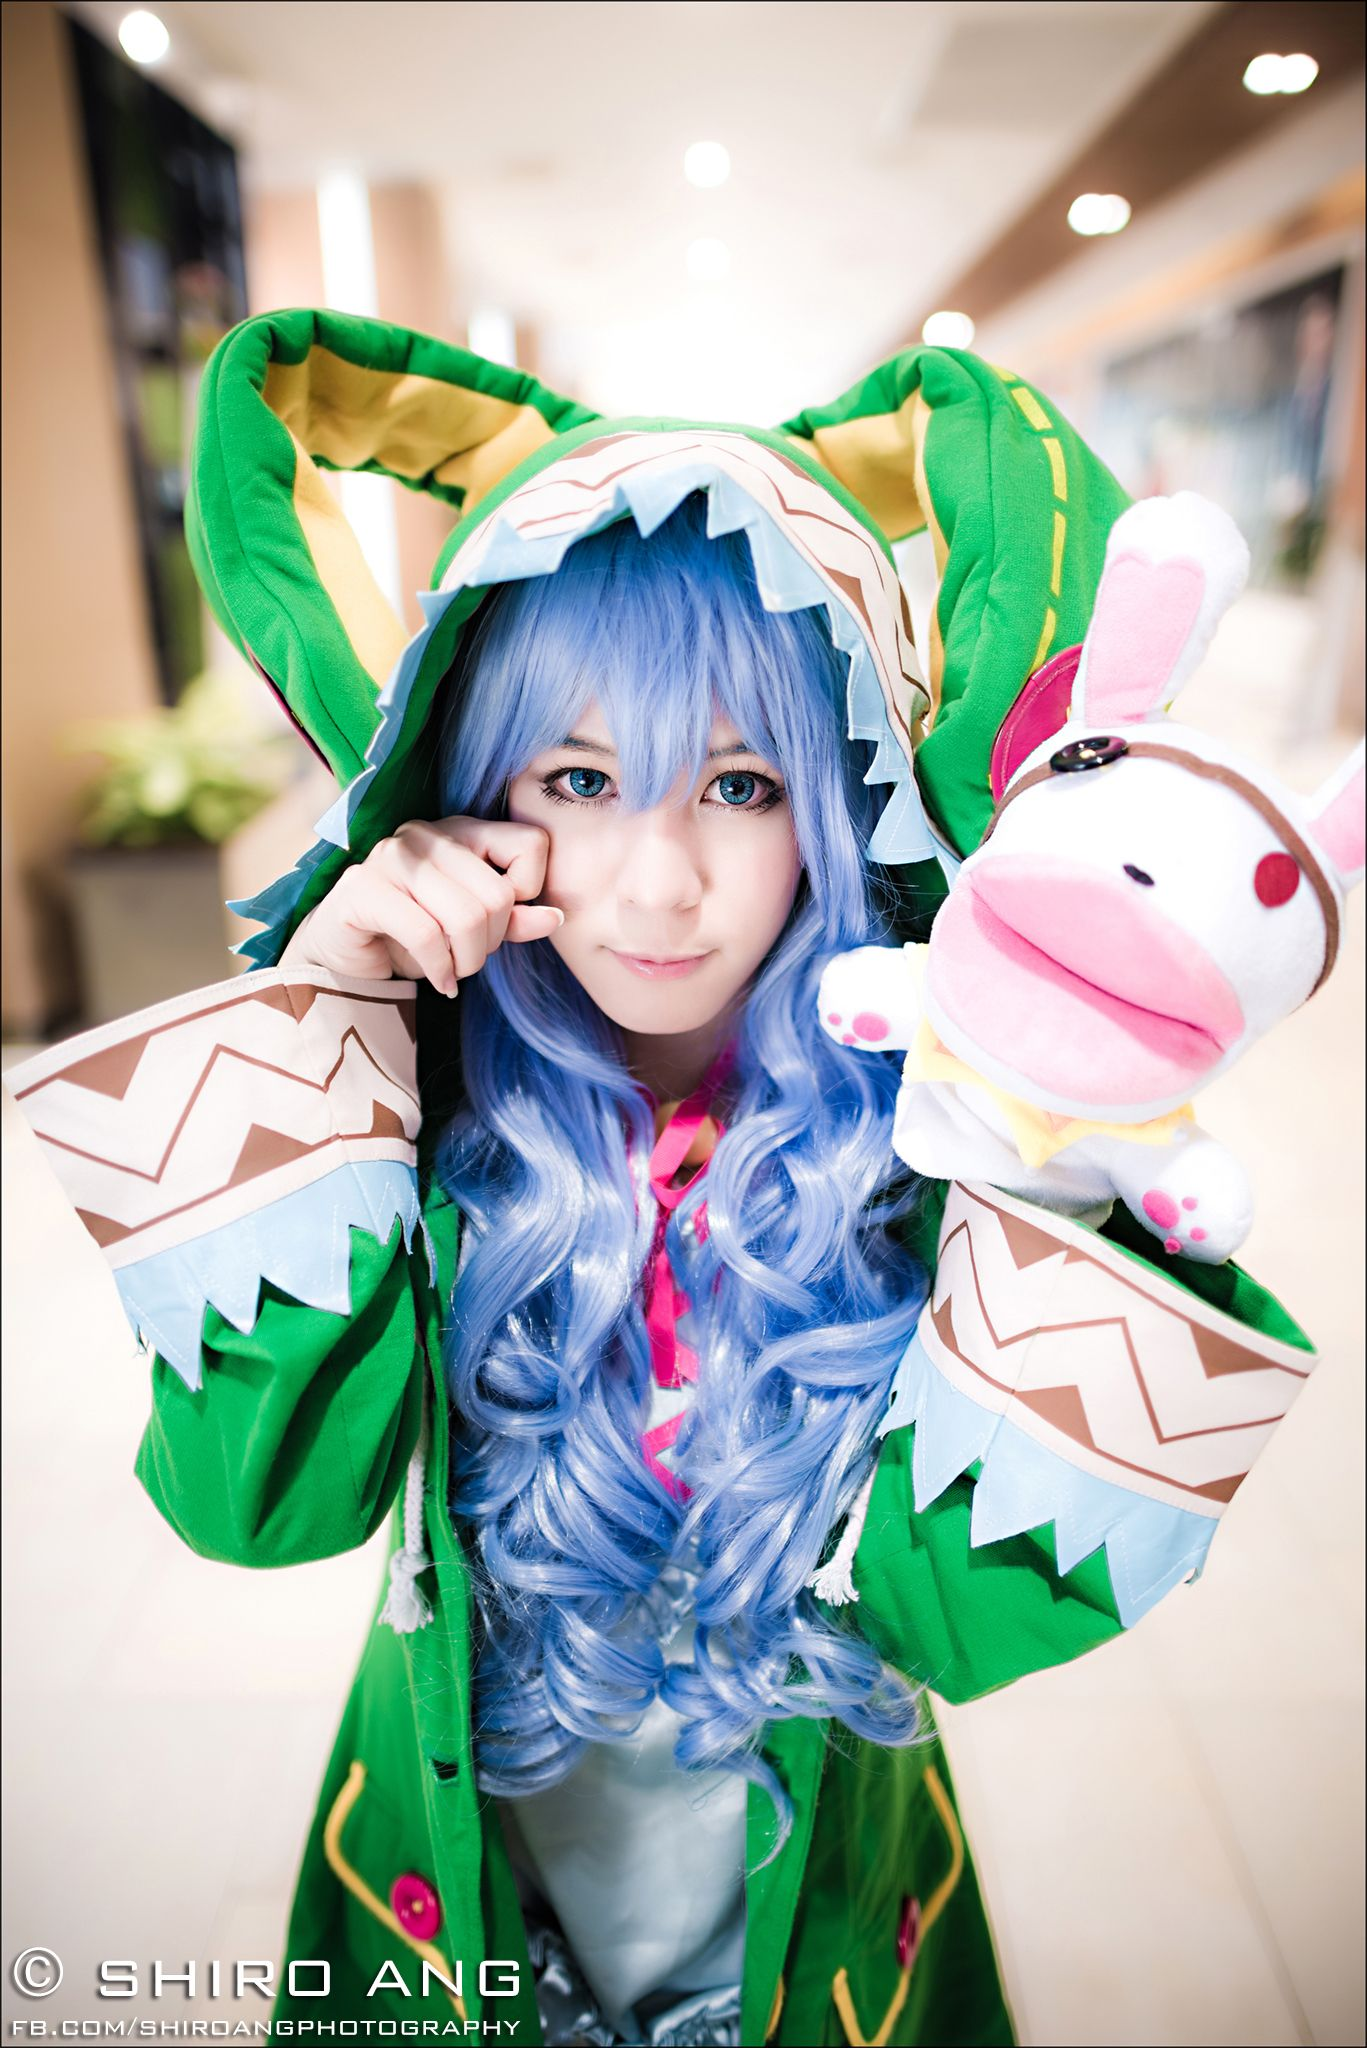 shiro dating site Ai kayano (茅野 愛衣,  in 2014, kayano played the role of shiro in the anime series no game no life kayano also performed the series' ending theme oración.